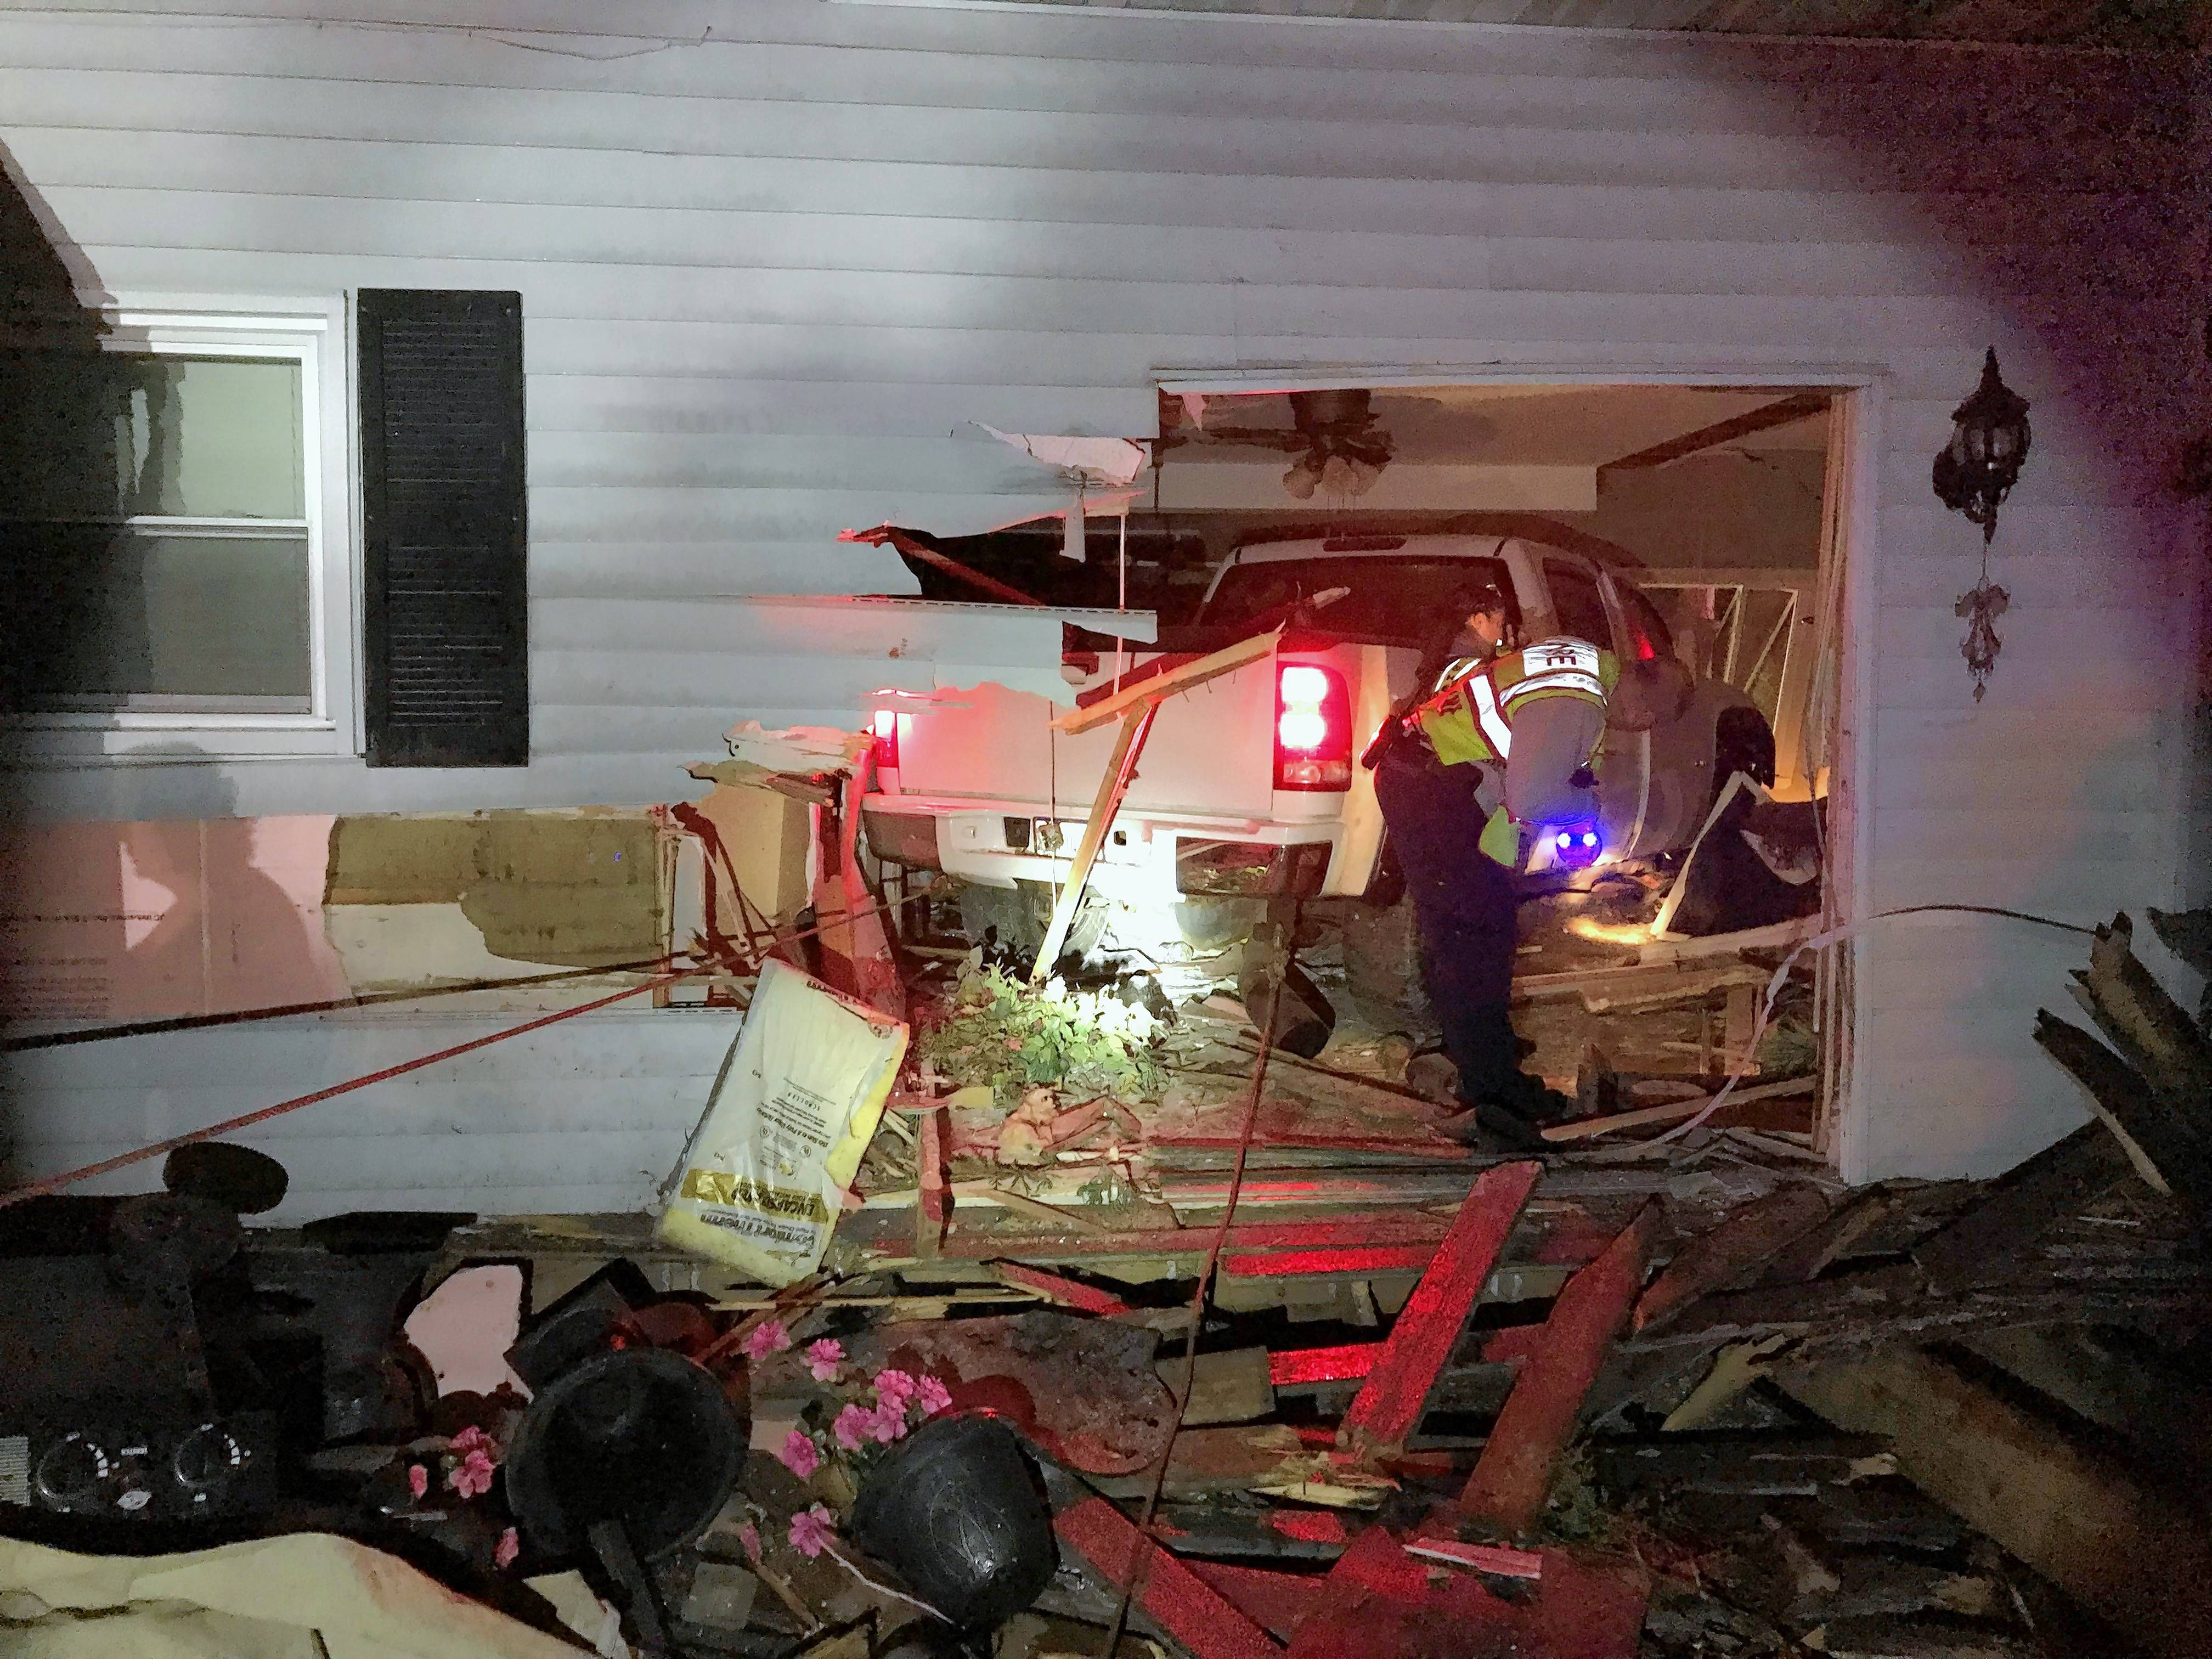 A pickup truck slammed into this home near Spring Grove early Sunday, leaving a sleeping 71-year-old resident pinned under the vehicle.